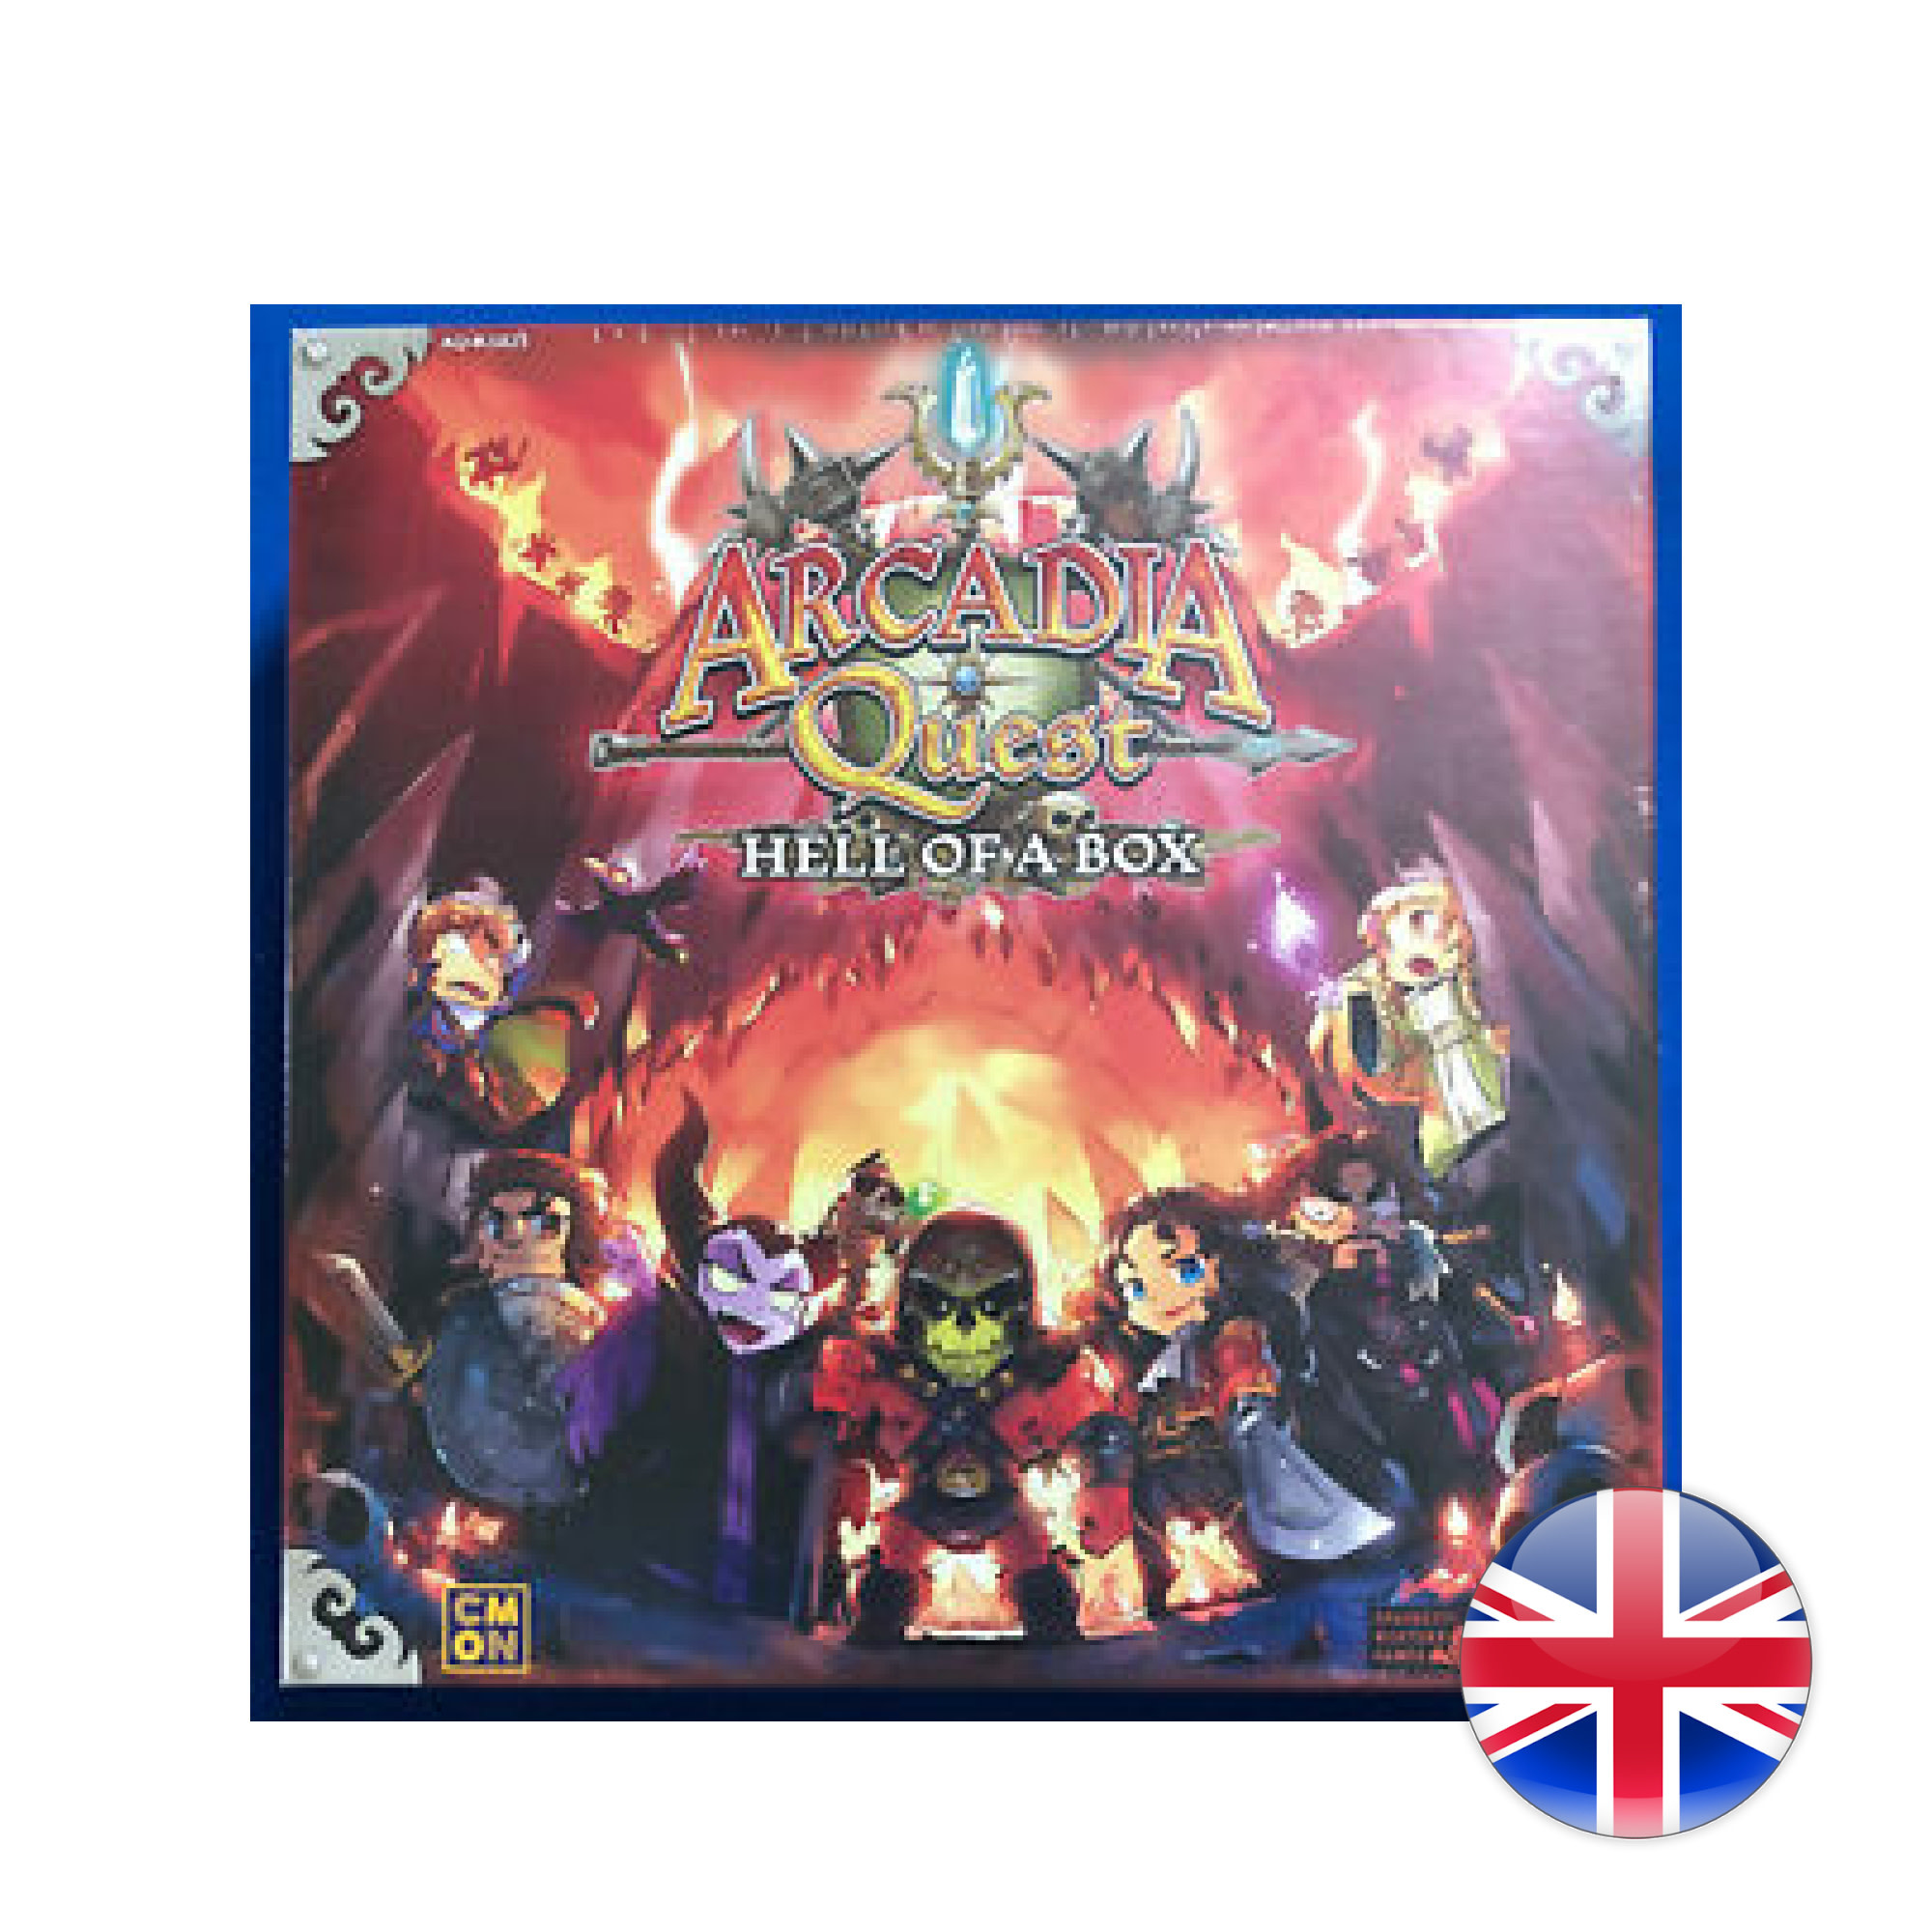 Arcadia quest Hell of a Box